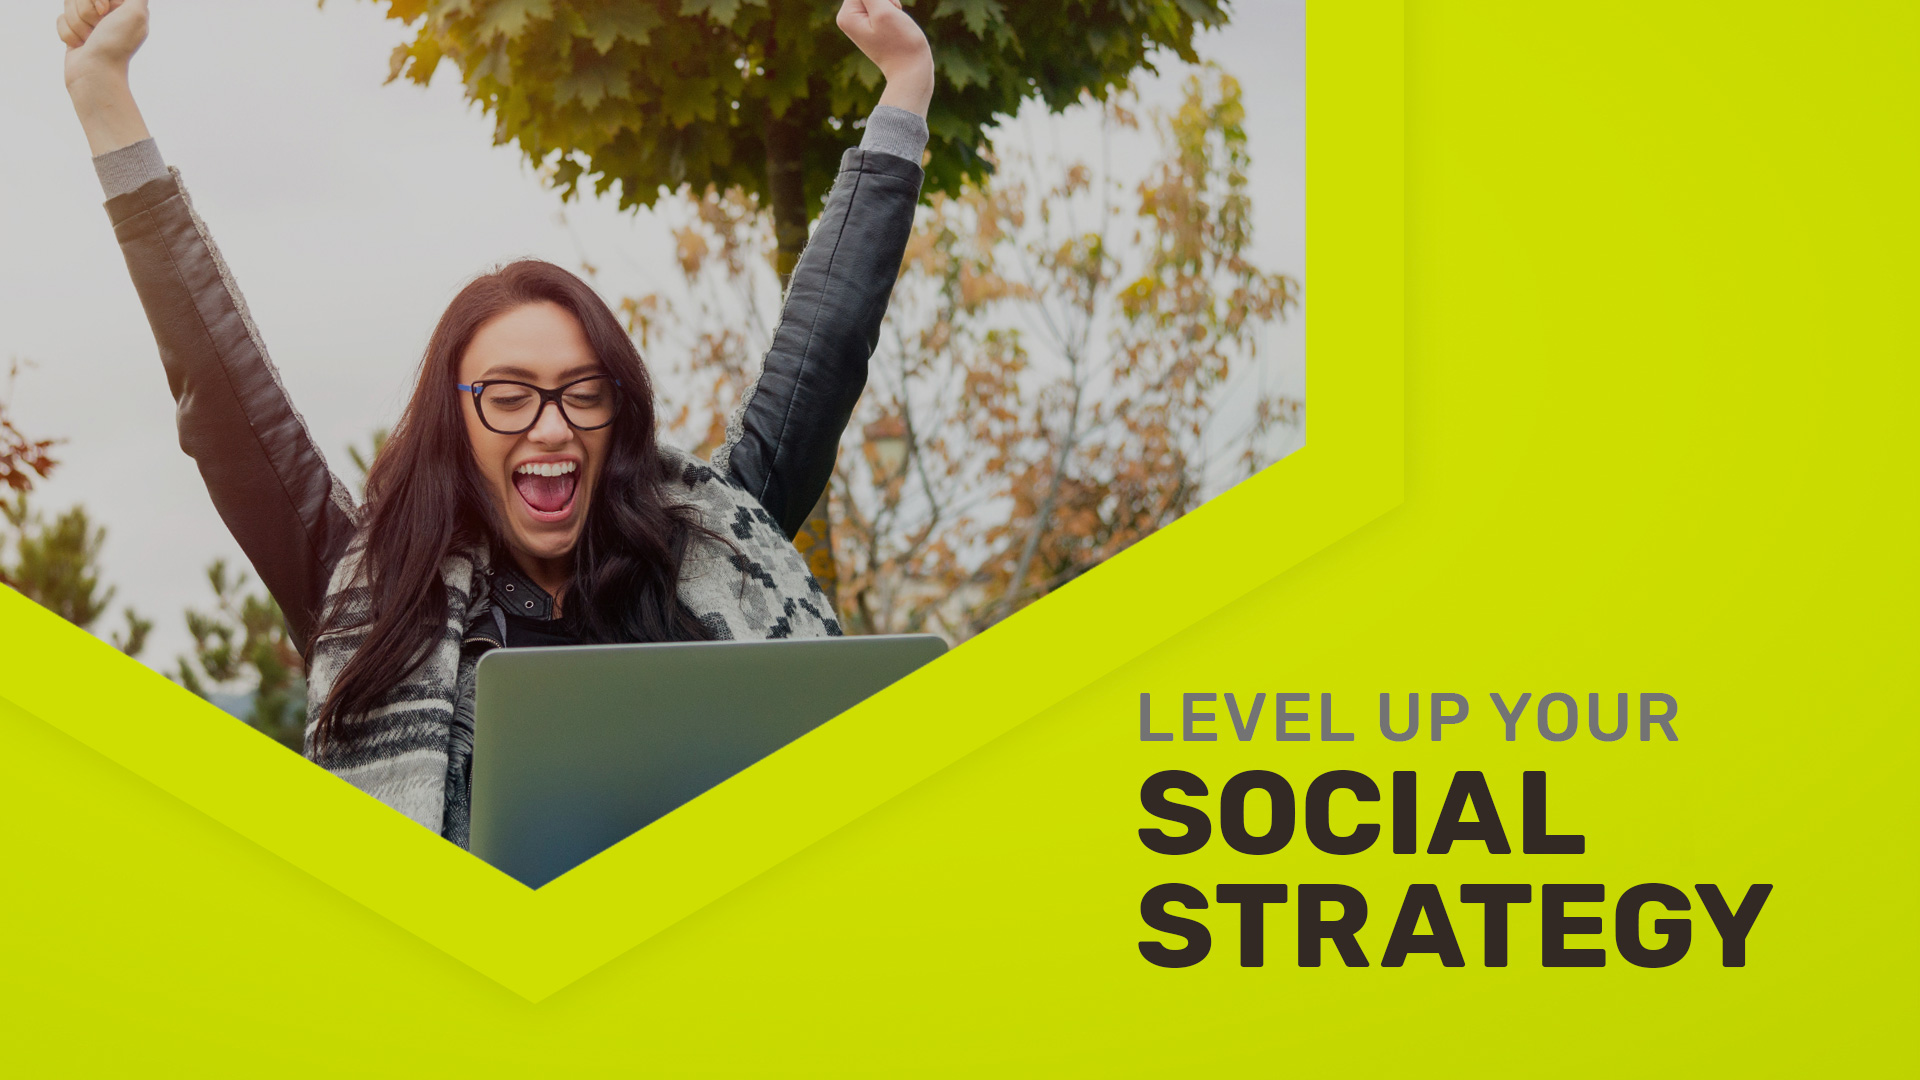 Digital marketer celebrating a successful social media strategy with text reading level up your social strategy